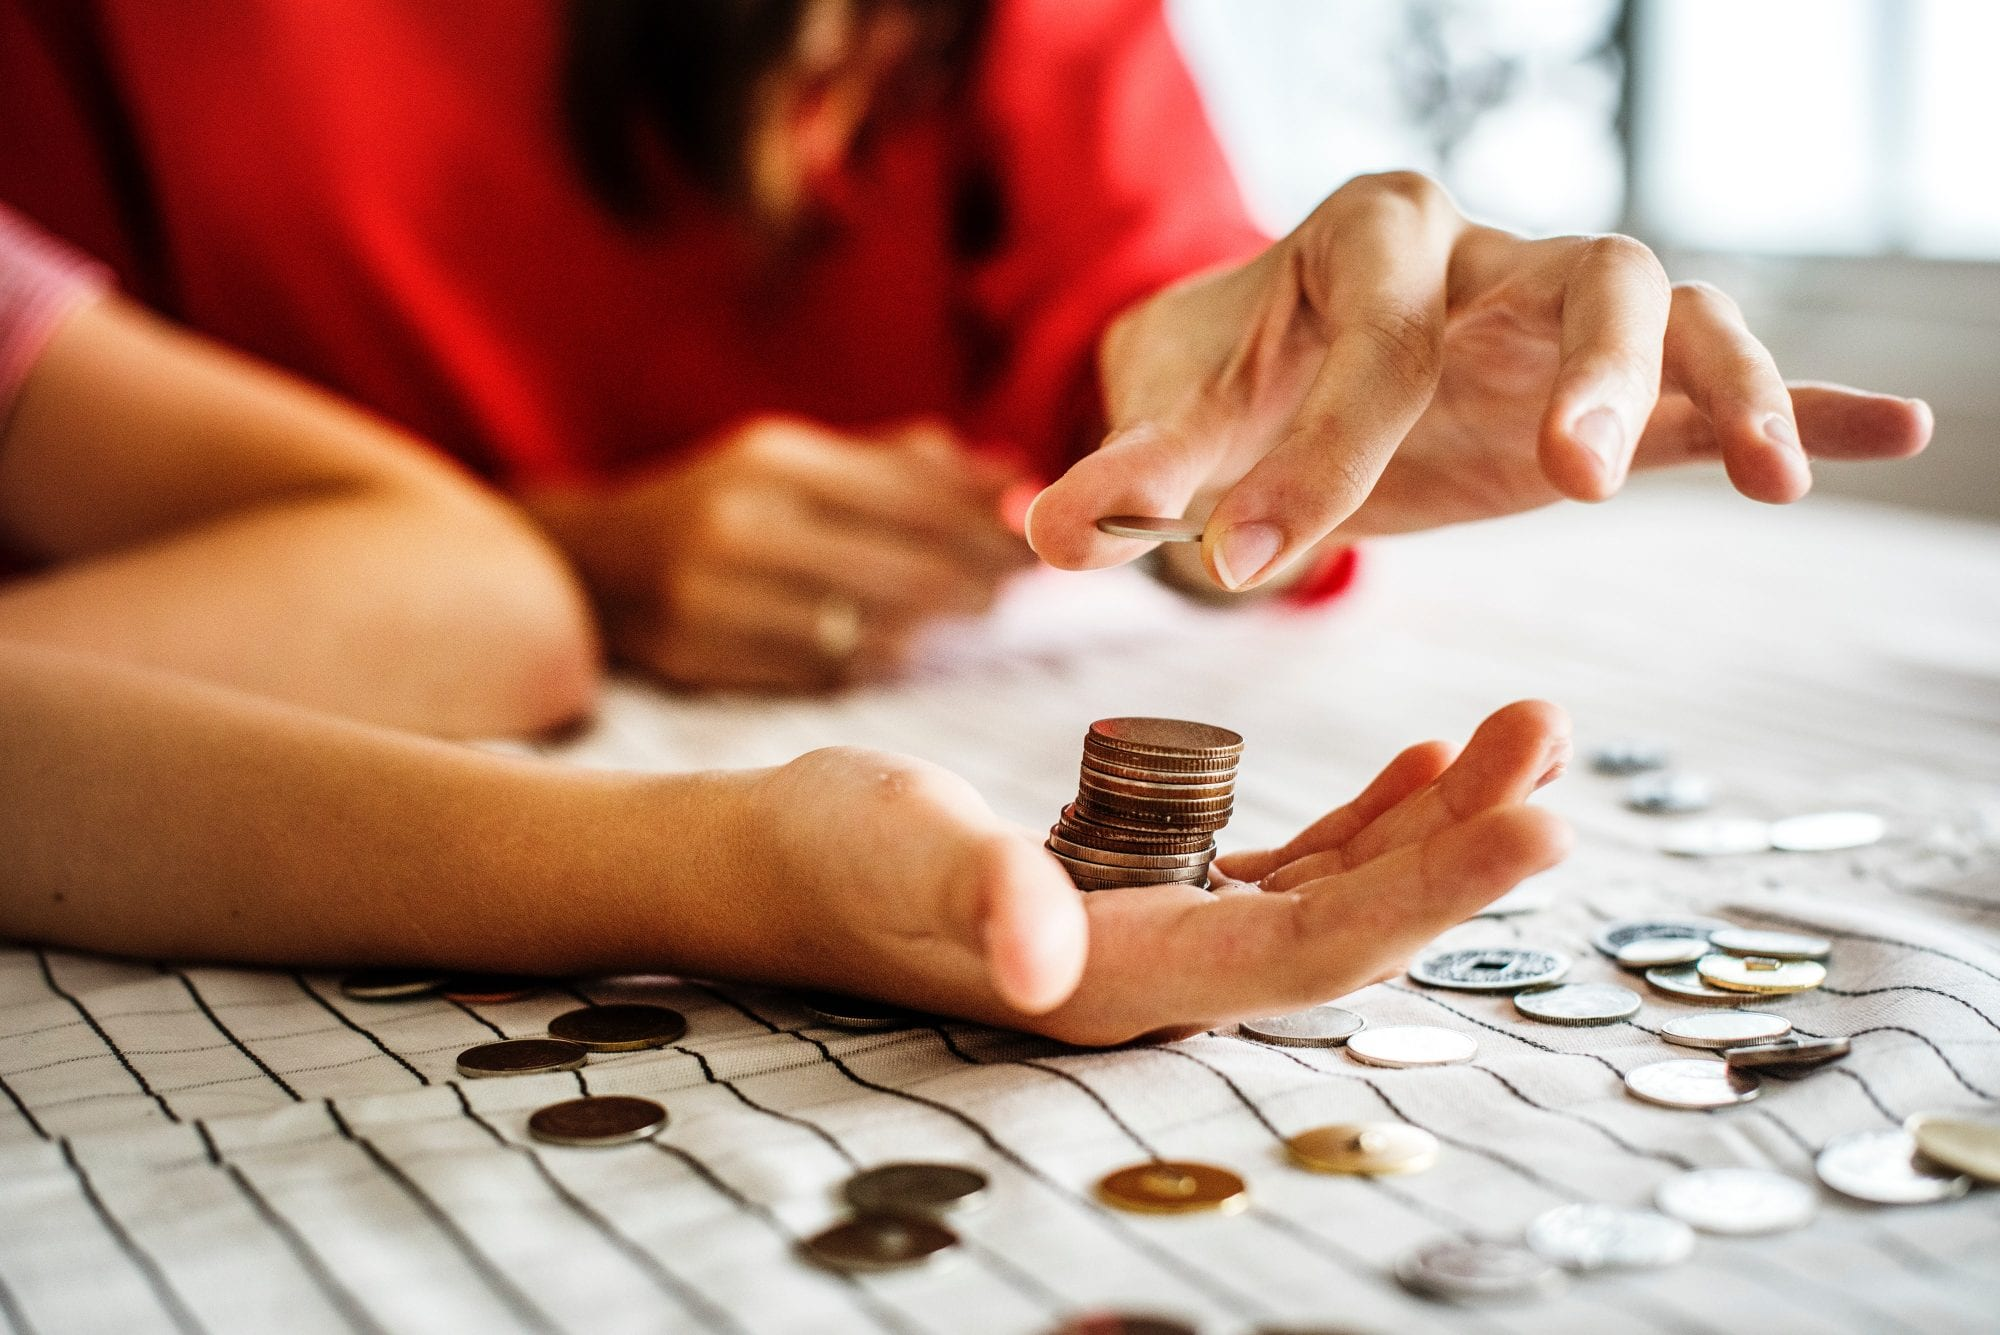 Counting money image